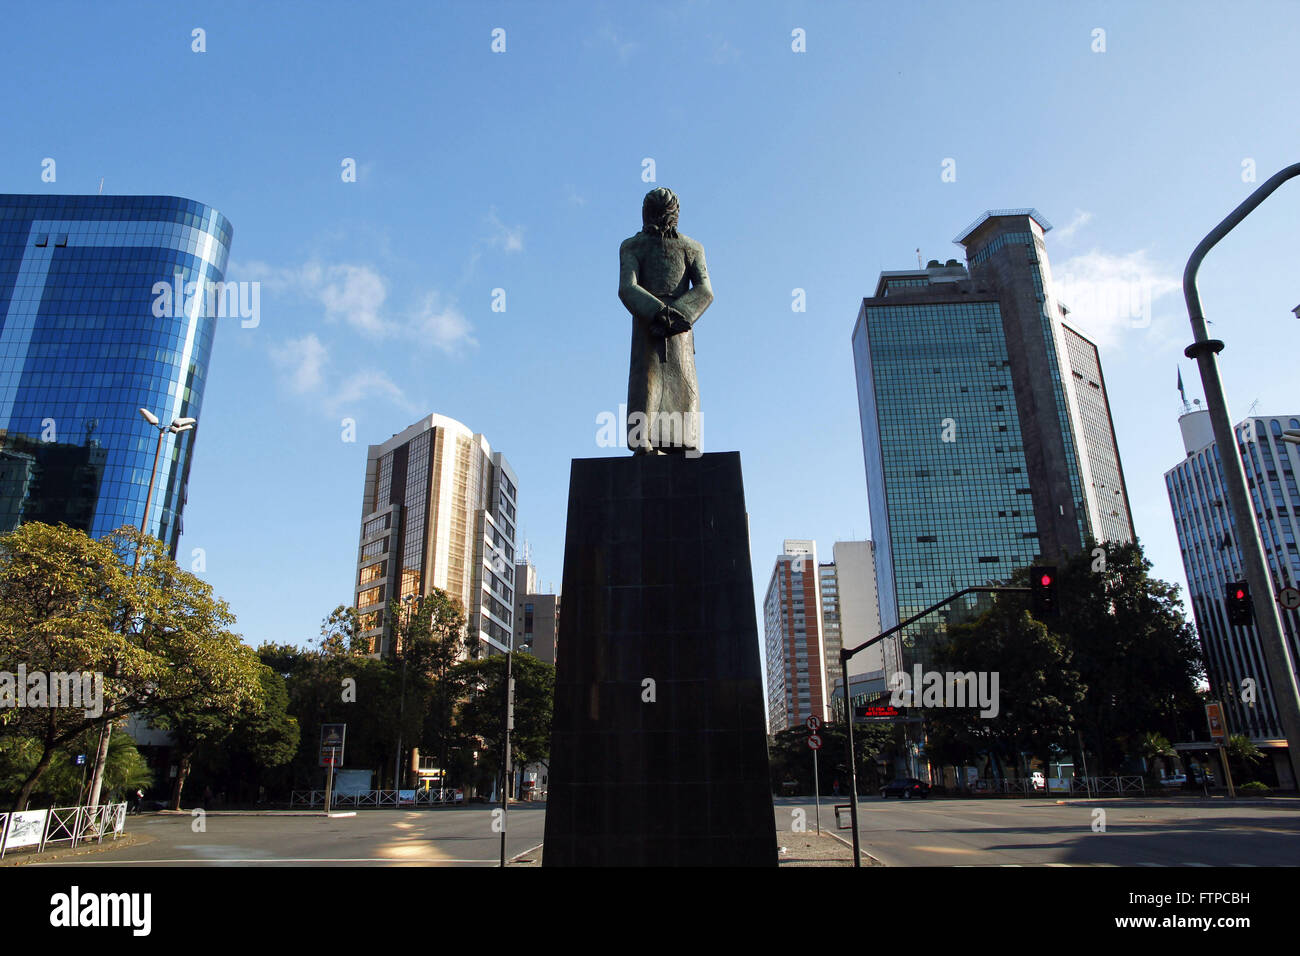 Monumento a Tiradentes in the confluence of the avenues and Brazil Afonso Pena in Belo Horizonte - MG - Stock Image